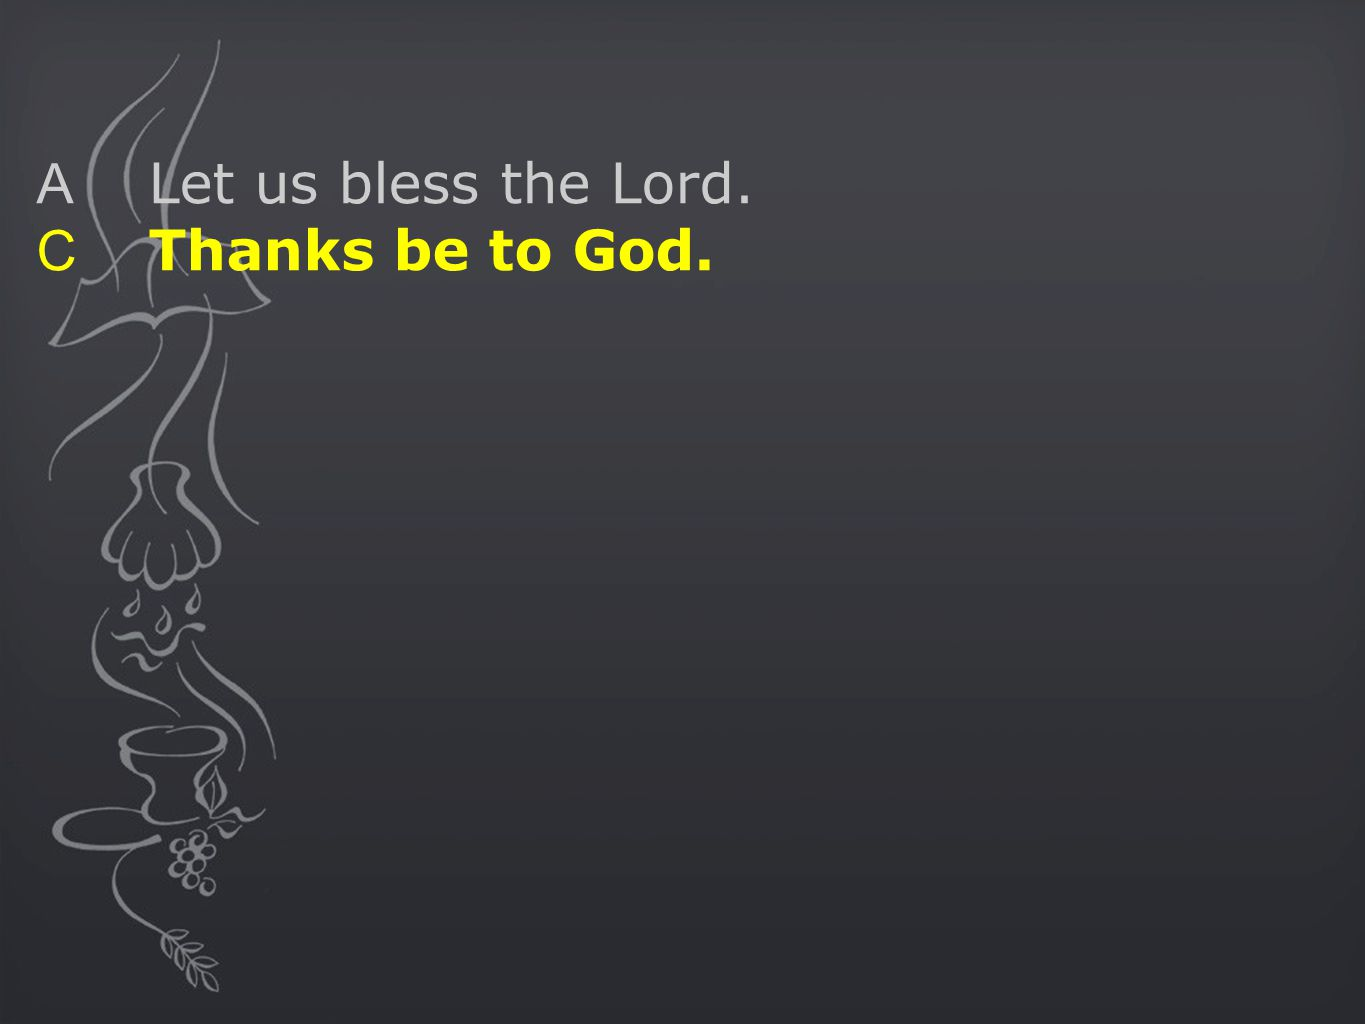 A Let us bless the Lord. C Thanks be to God.